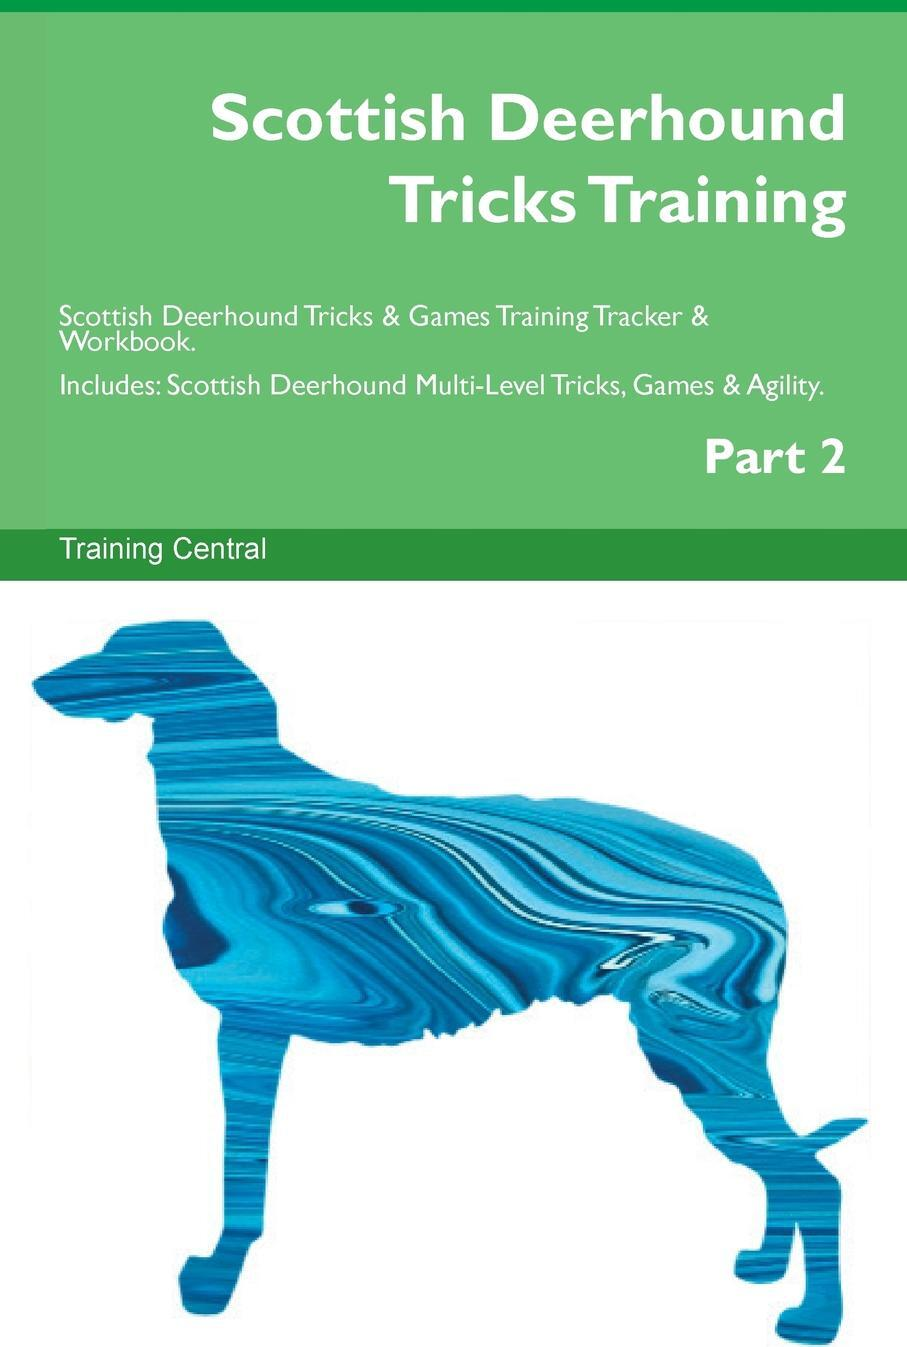 Scottish Deerhound Tricks Training Scottish Deerhound Tricks & Games Training Tracker & Workbook. Includes. Scottish Deerhound Multi-Level Tricks, Games & Agility. Part 2